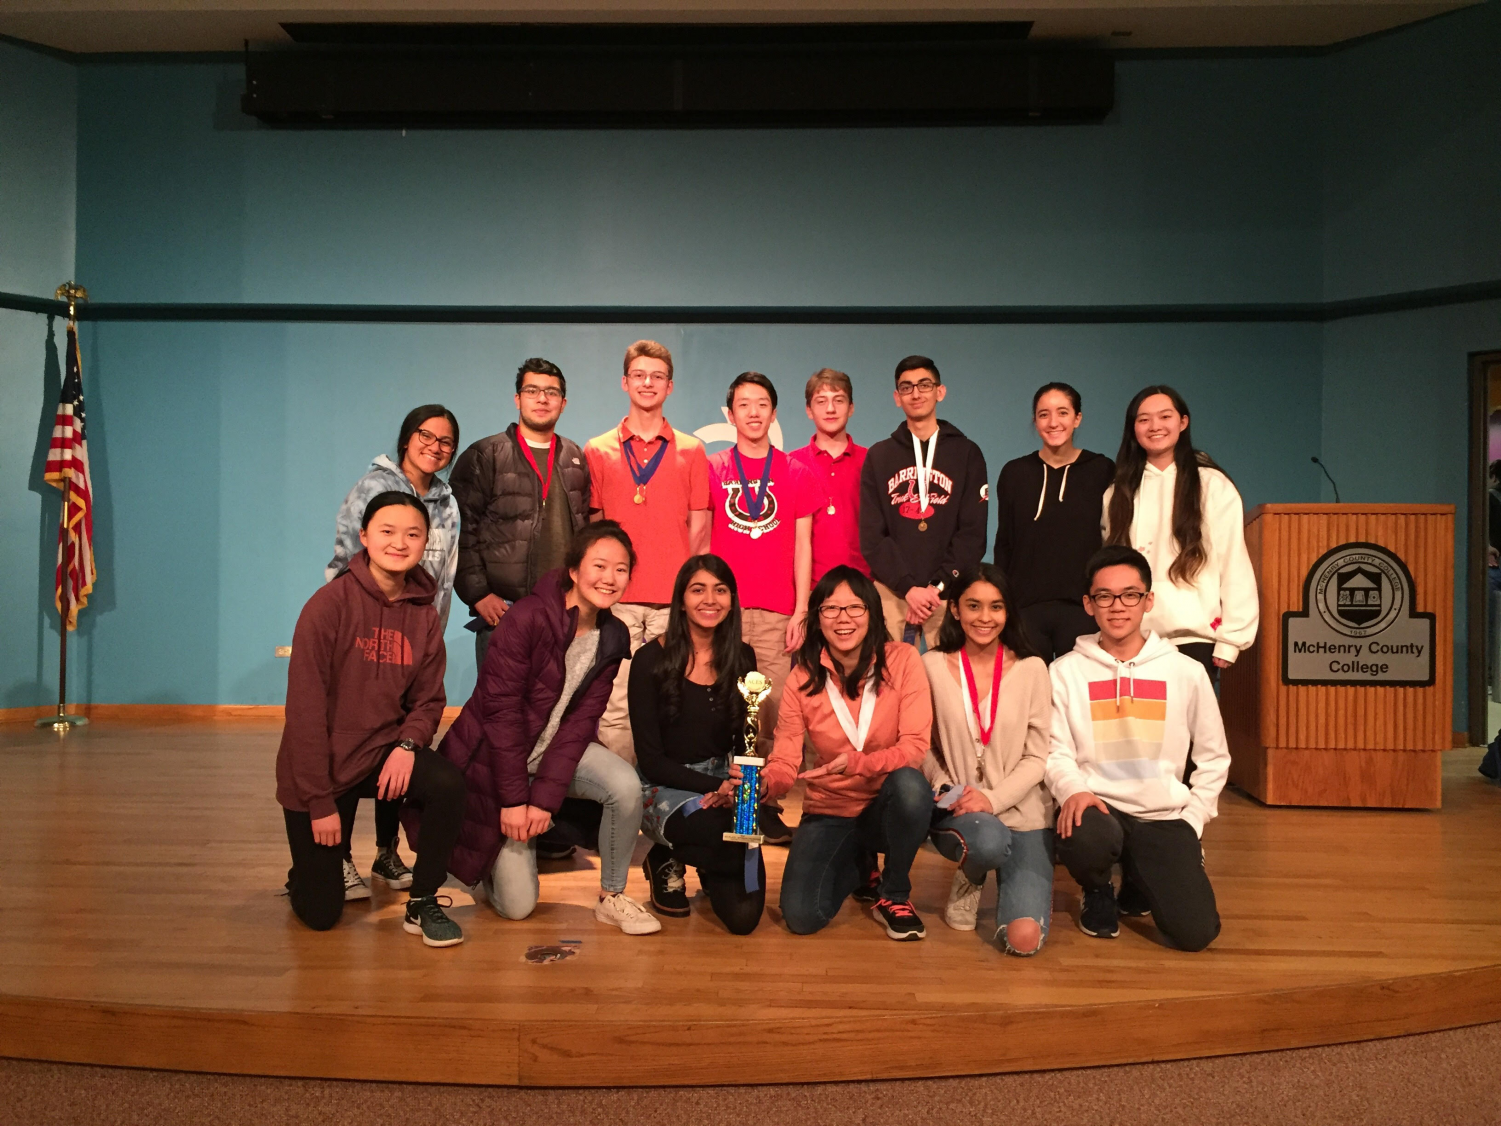 Coach Patrick Houk and the BHS Academic Challenge Team earned a perfect score and received 1st-place in the McHenry County Regional Competition.